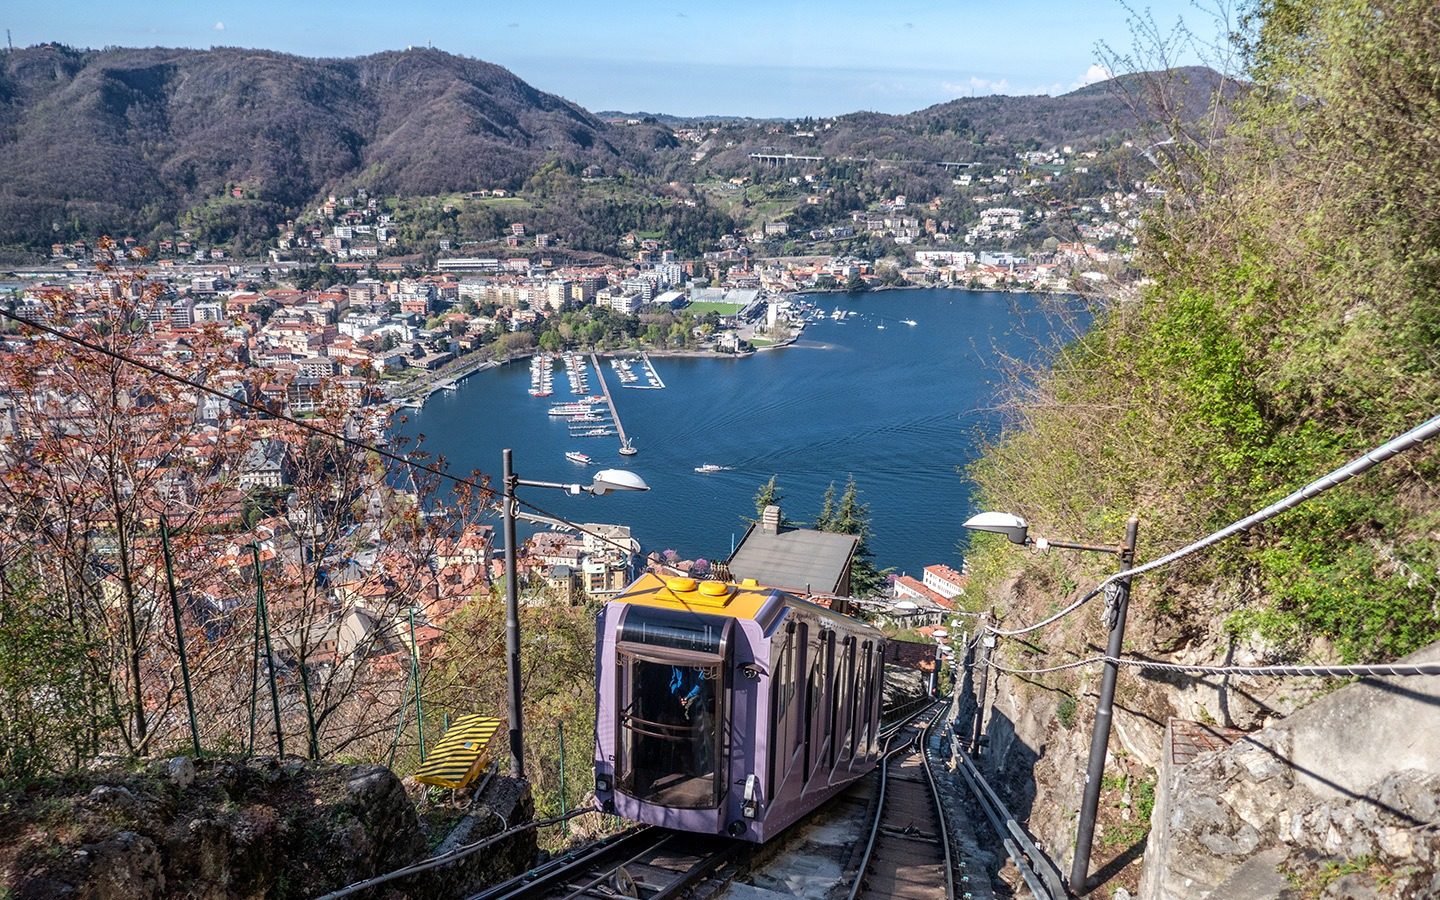 The funicular railway from Como town to Brunate